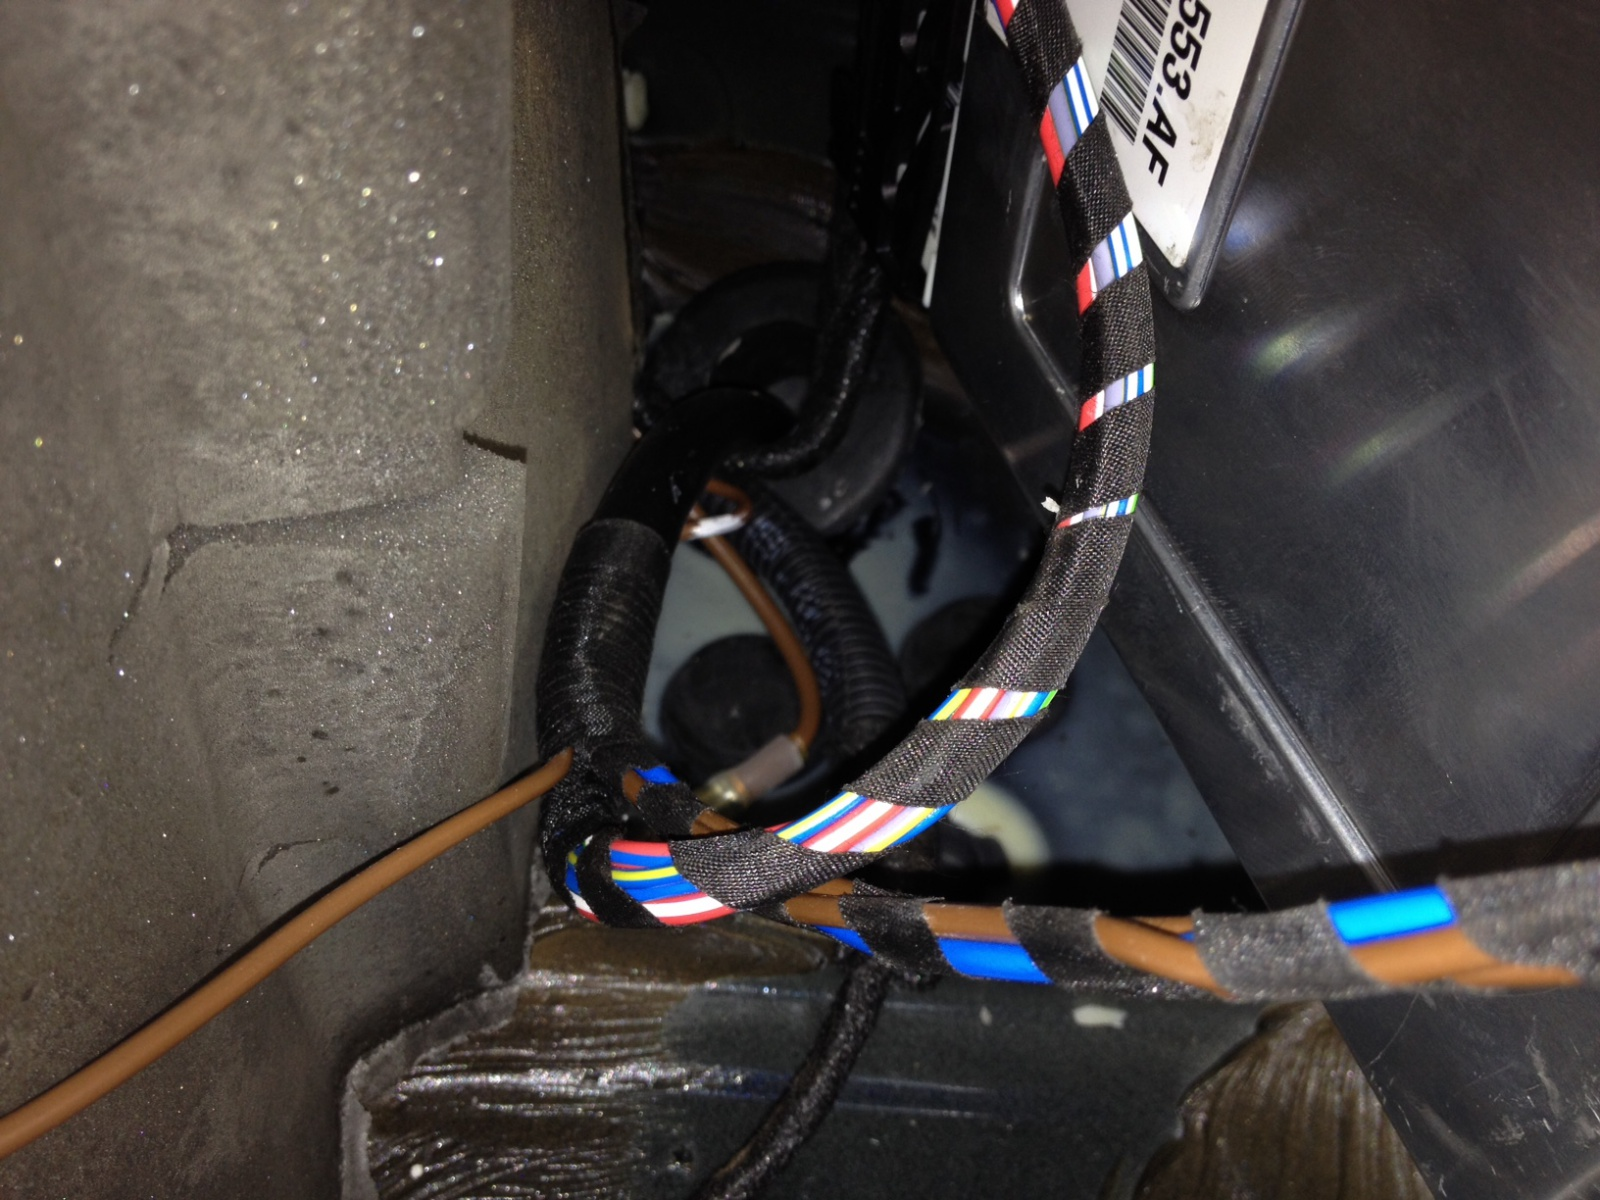 The Form Below To Delete This Thread Install Trailer Wiring Harness Diy Brake Controller For Oz 7p Tregs Without Factory Tow Click Image Larger Version Name Brake2 Views 239 Size 4987